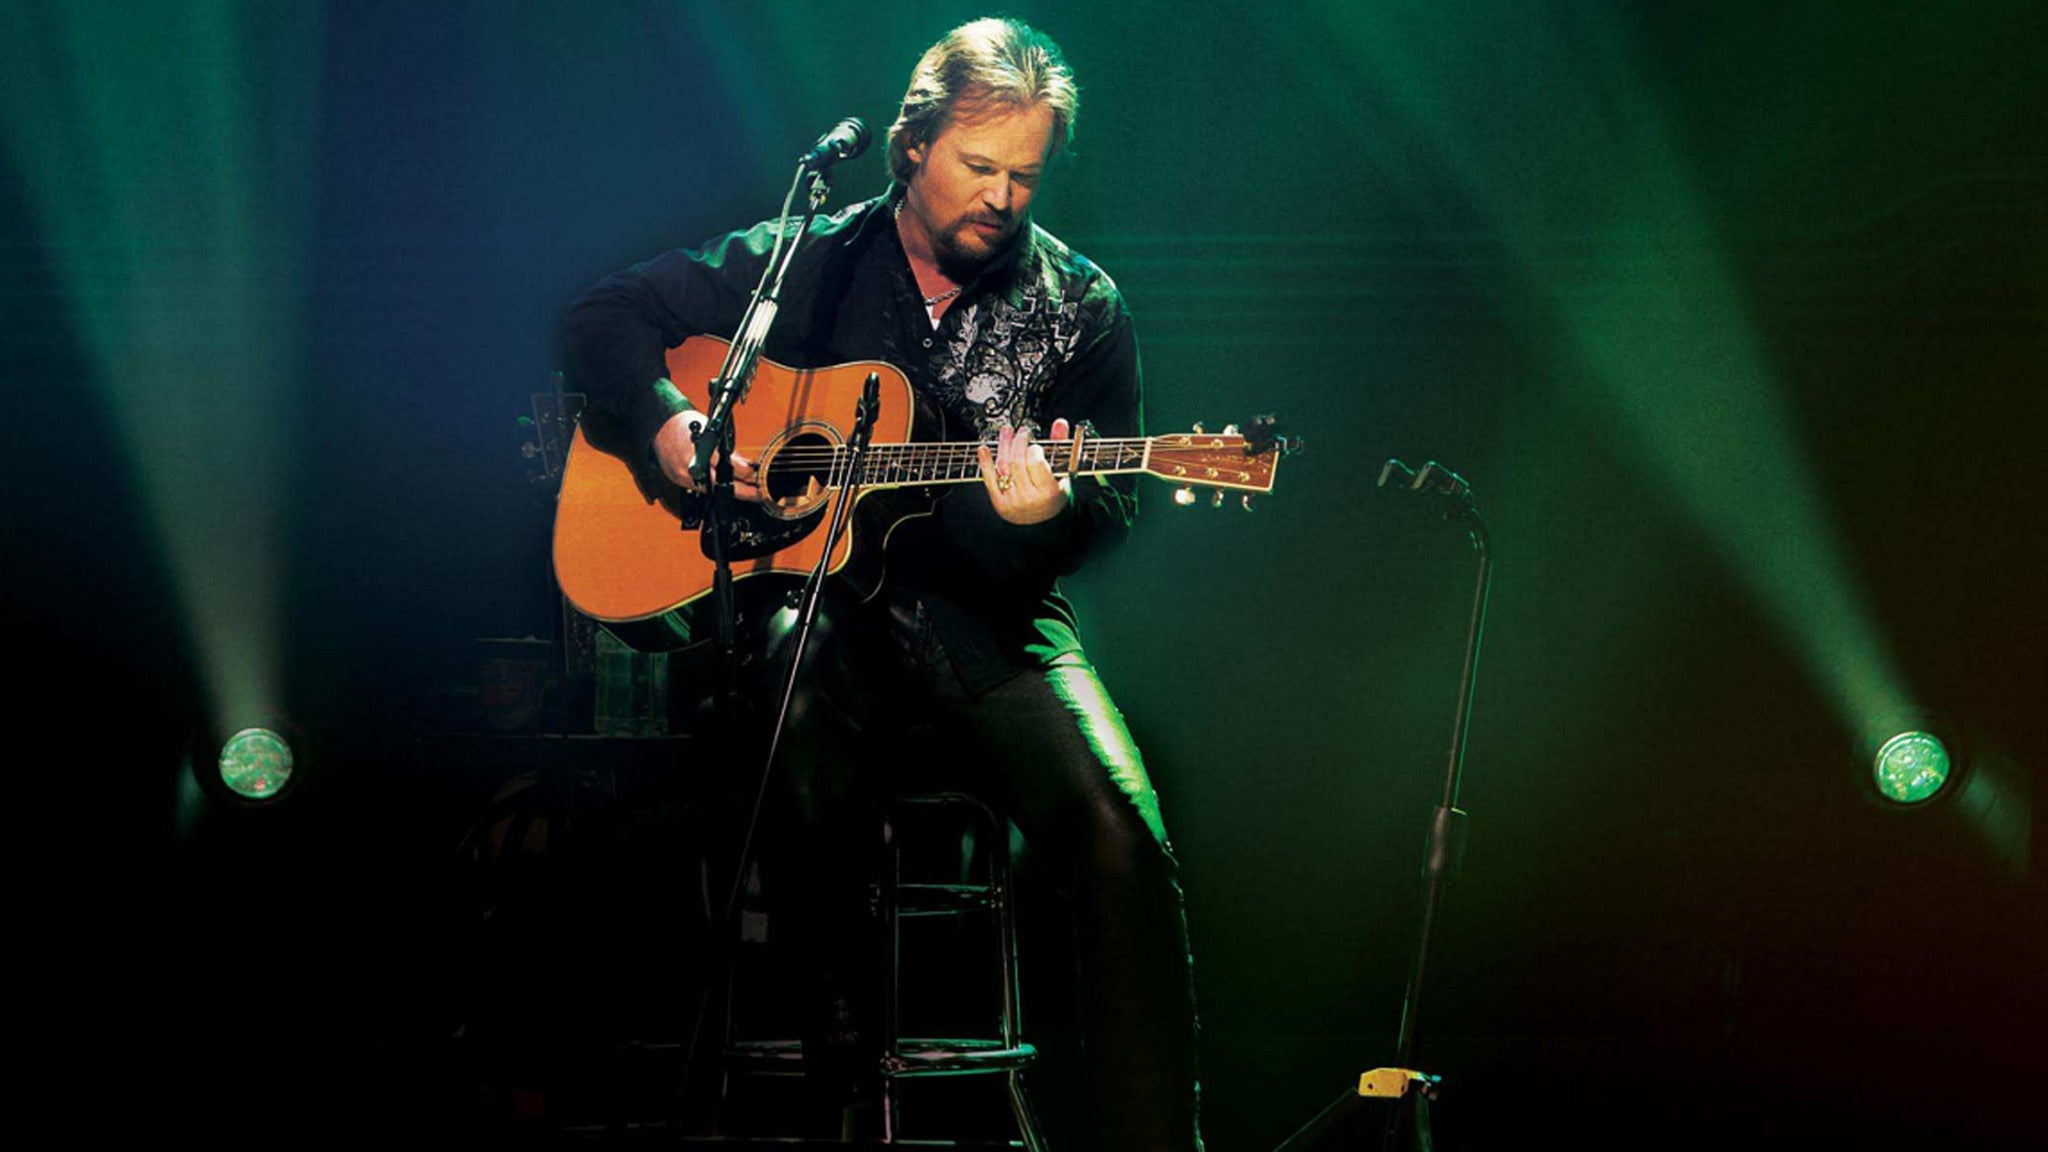 Outlaws & Renegades Tour ft. Travis Tritt and Charlie Daniels Band